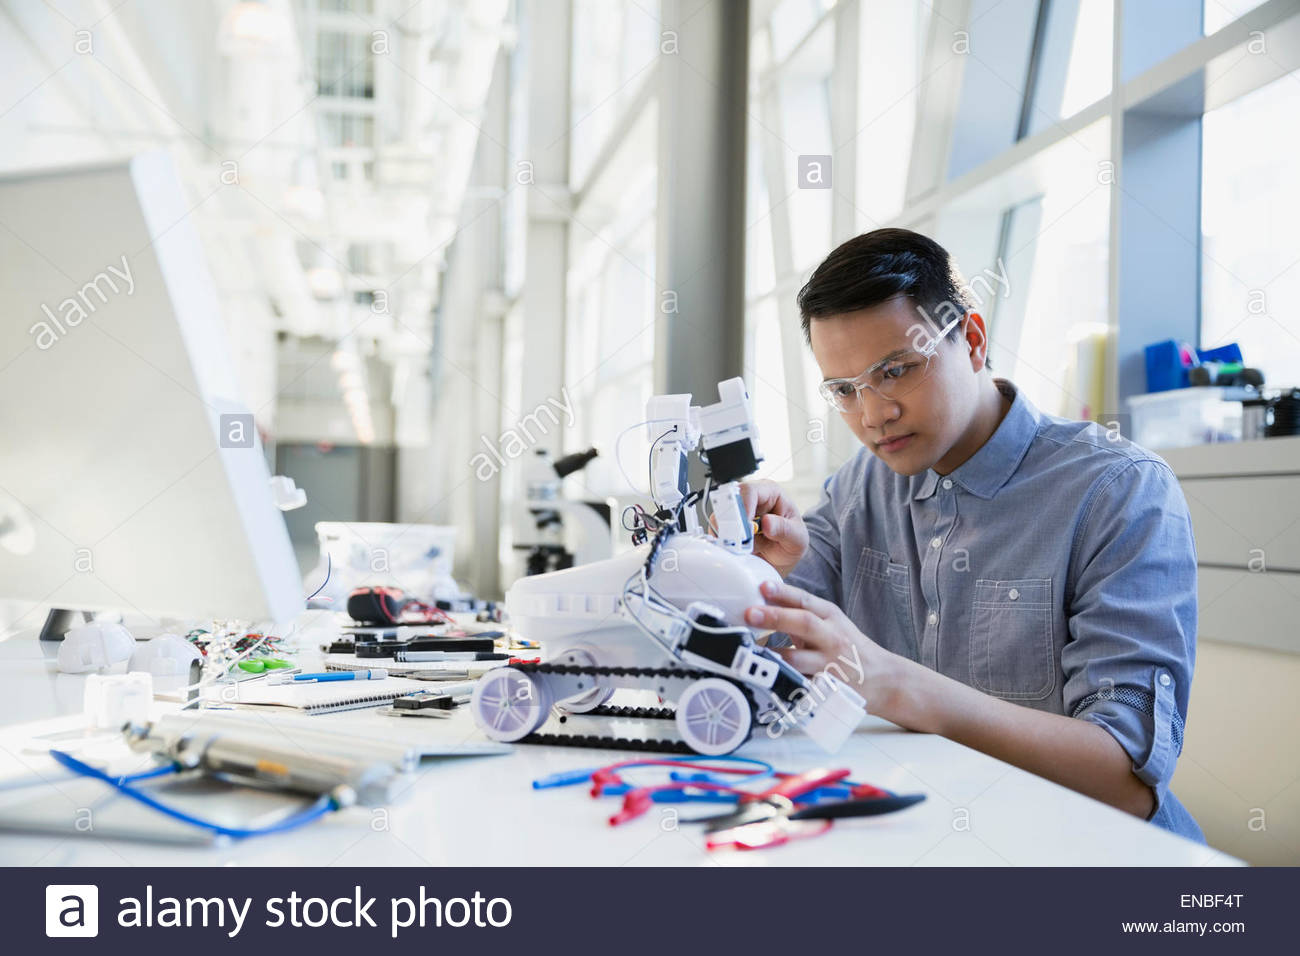 Focused engineer assembling robotic car - Stock Image